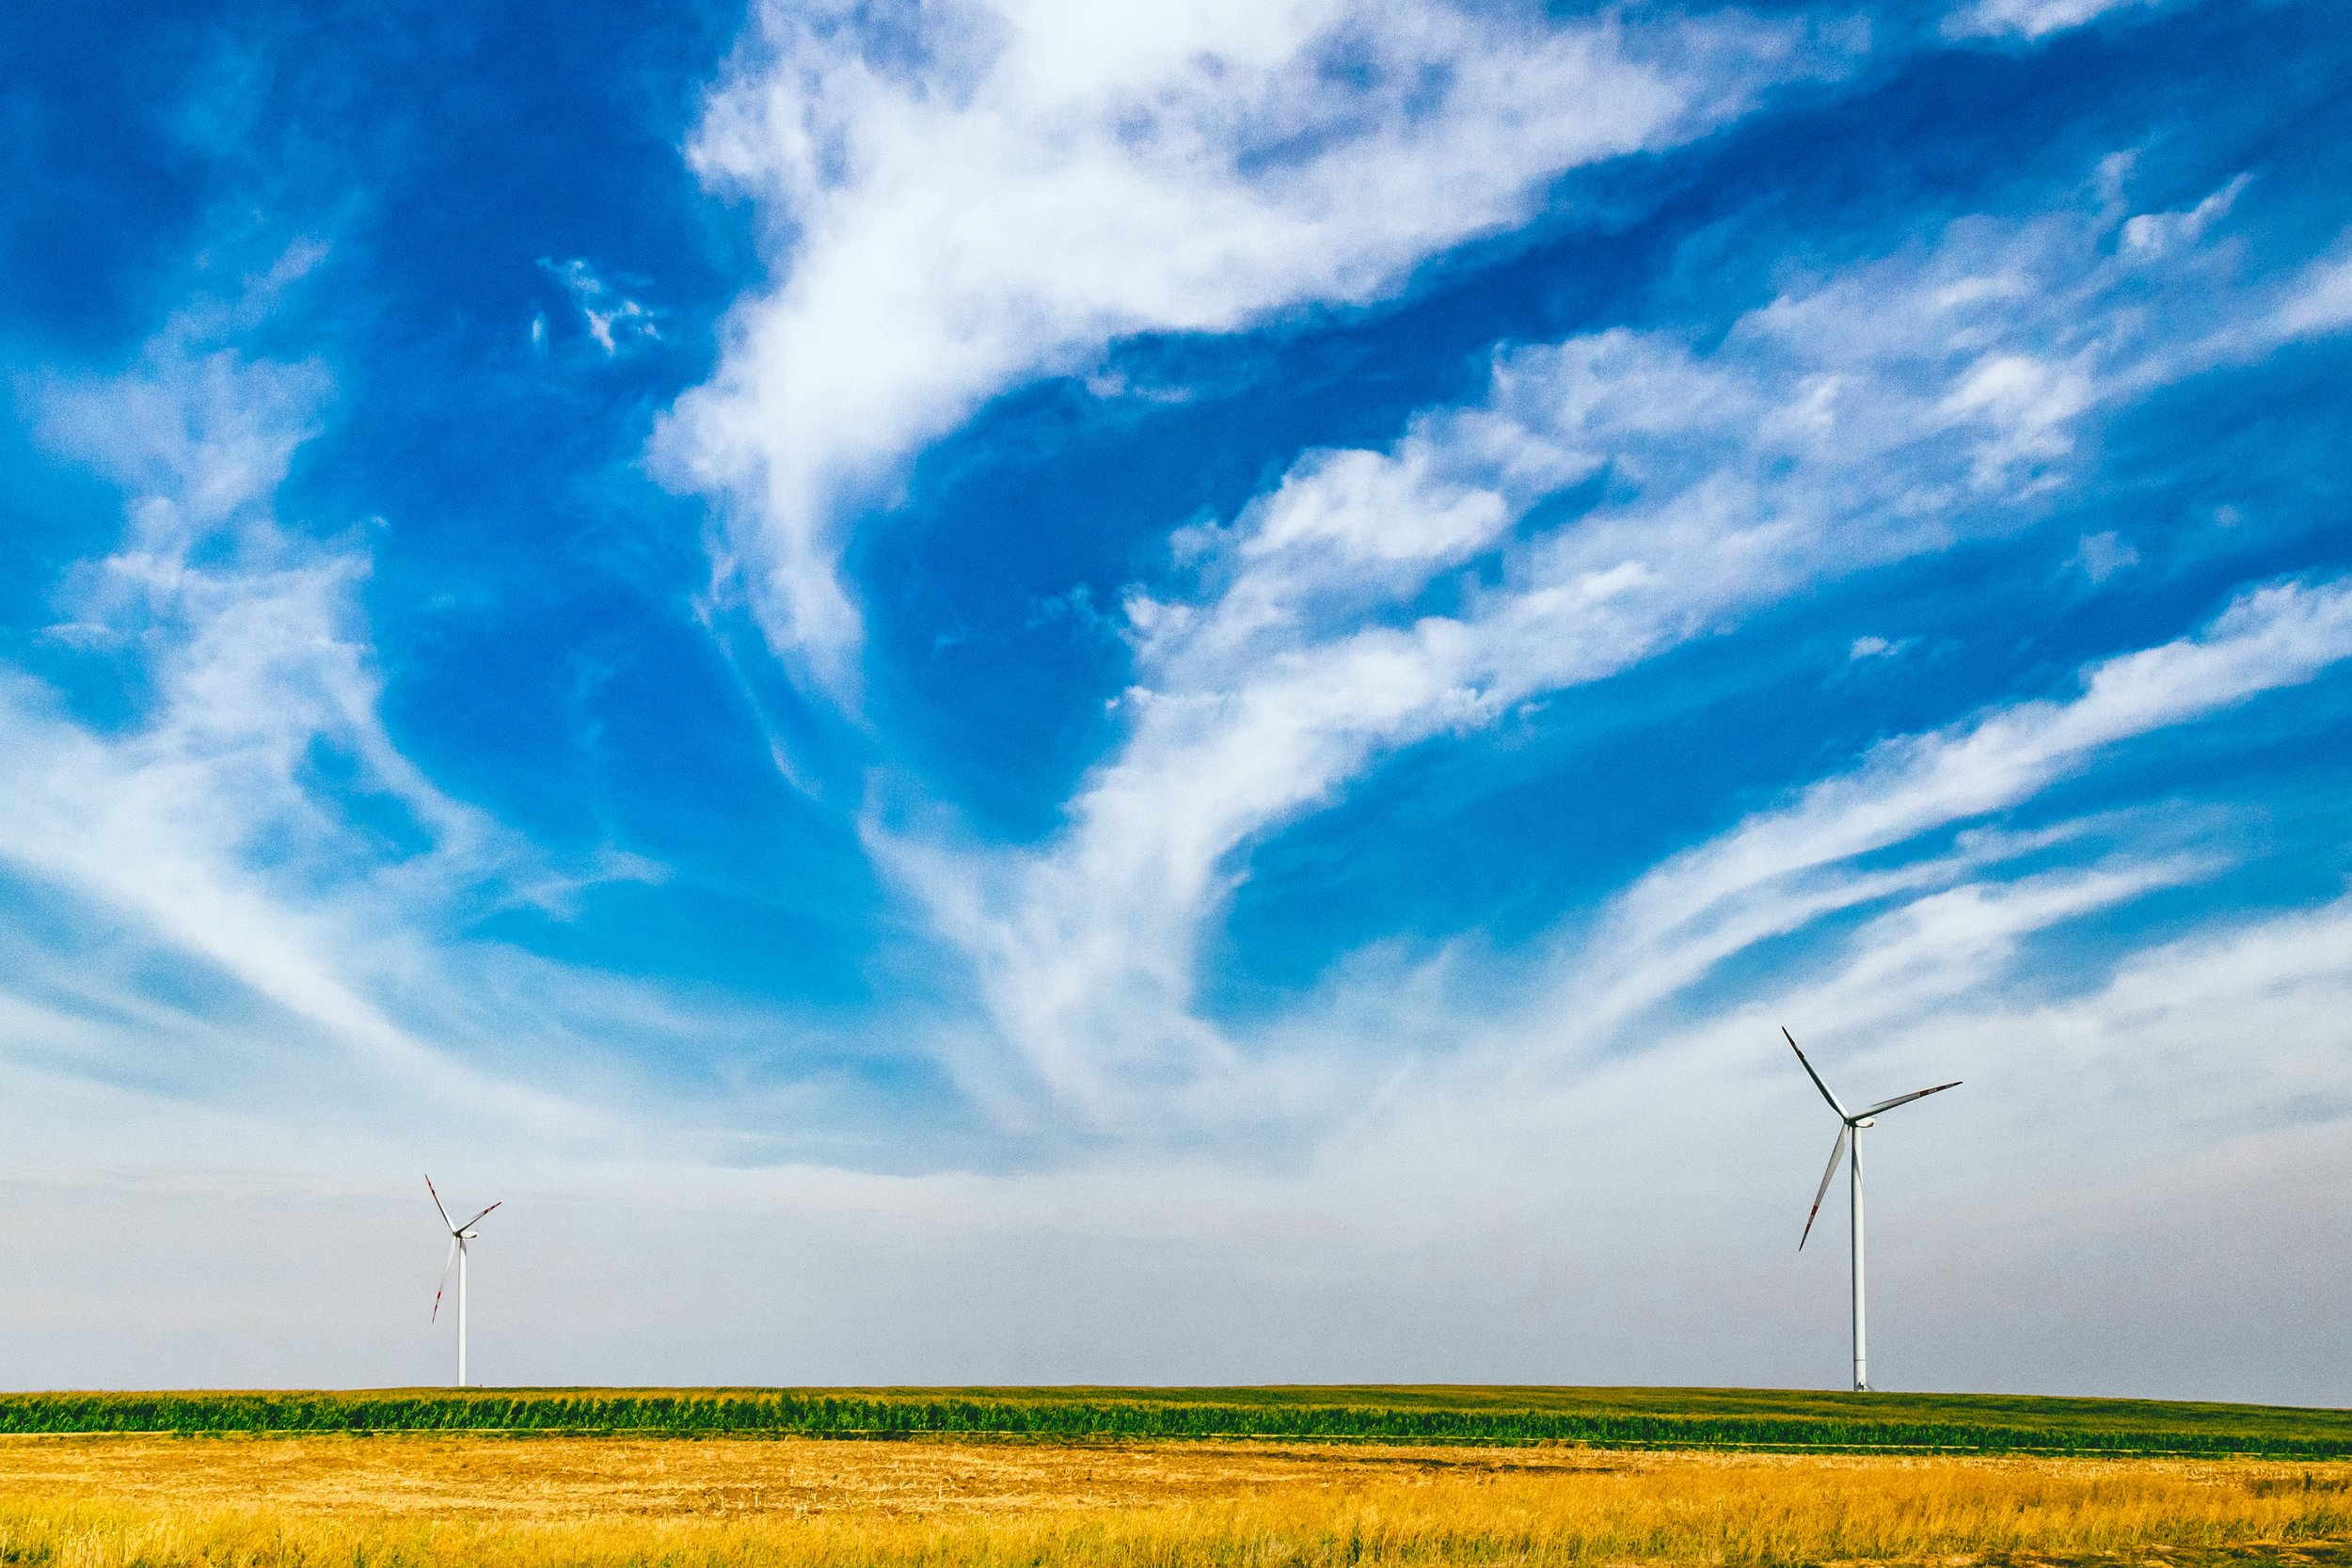 Experience - 15 years in the Renewable Energy Sector